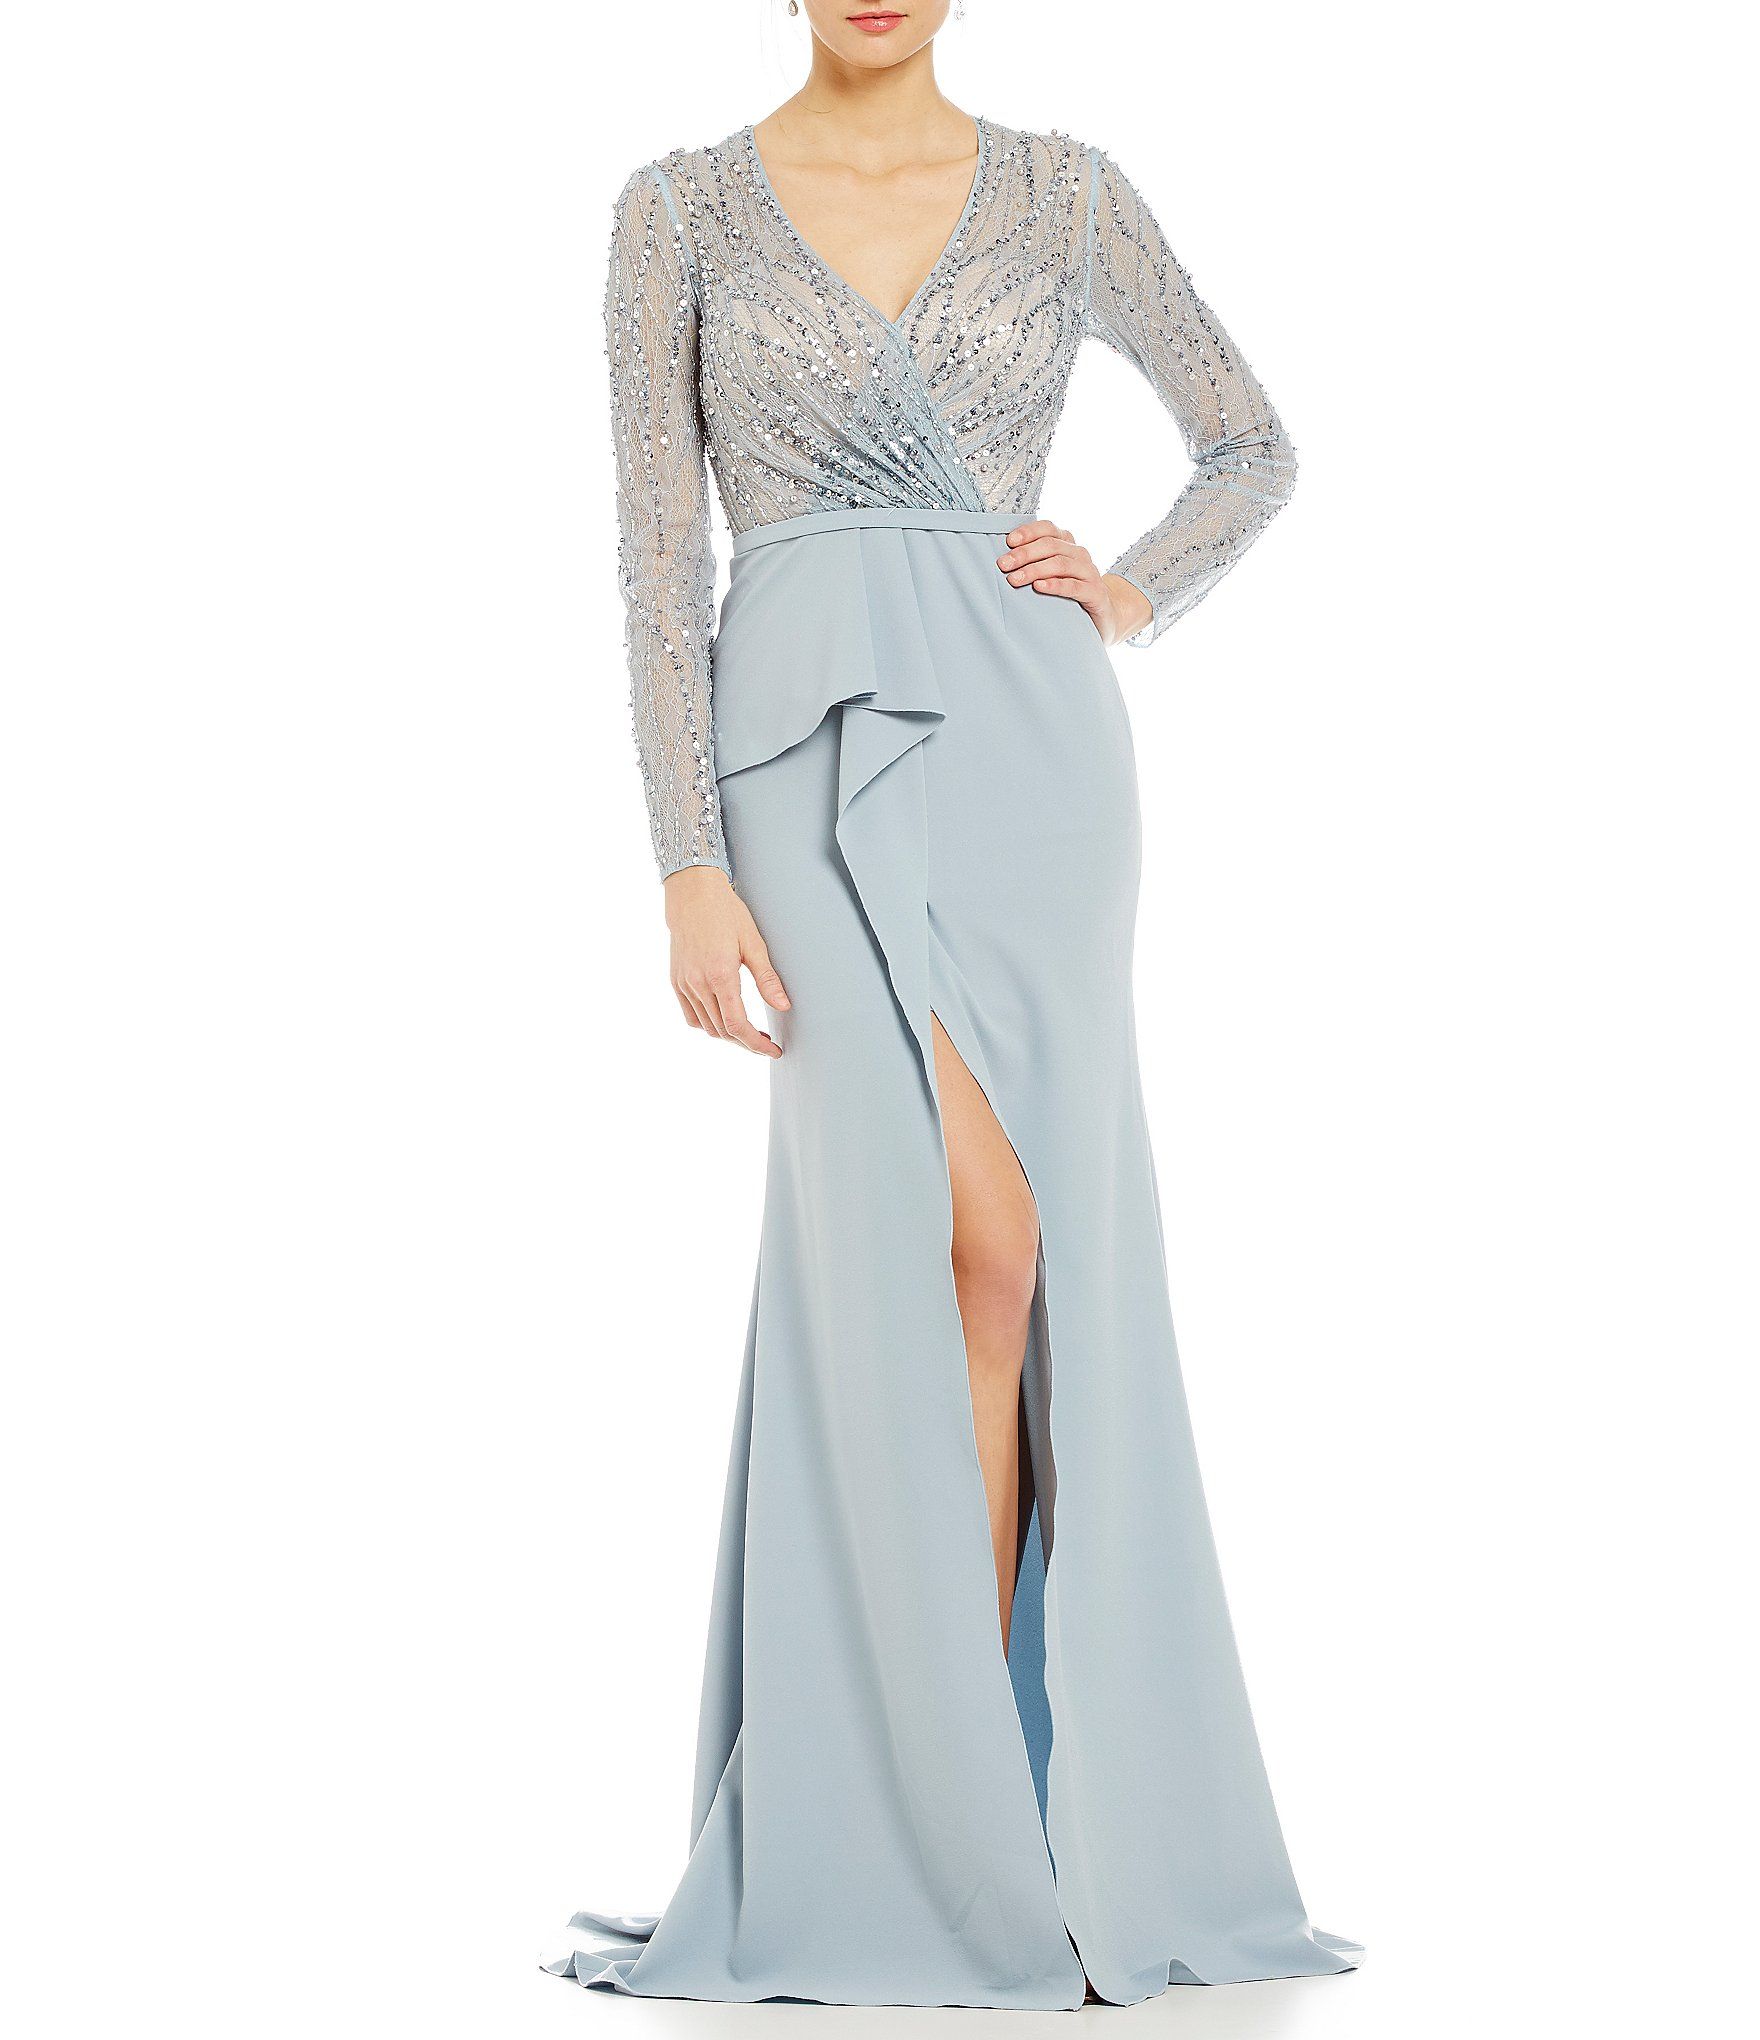 Terani Couture Silver Women\'s Formal Dresses & Evening Gowns | Dillards